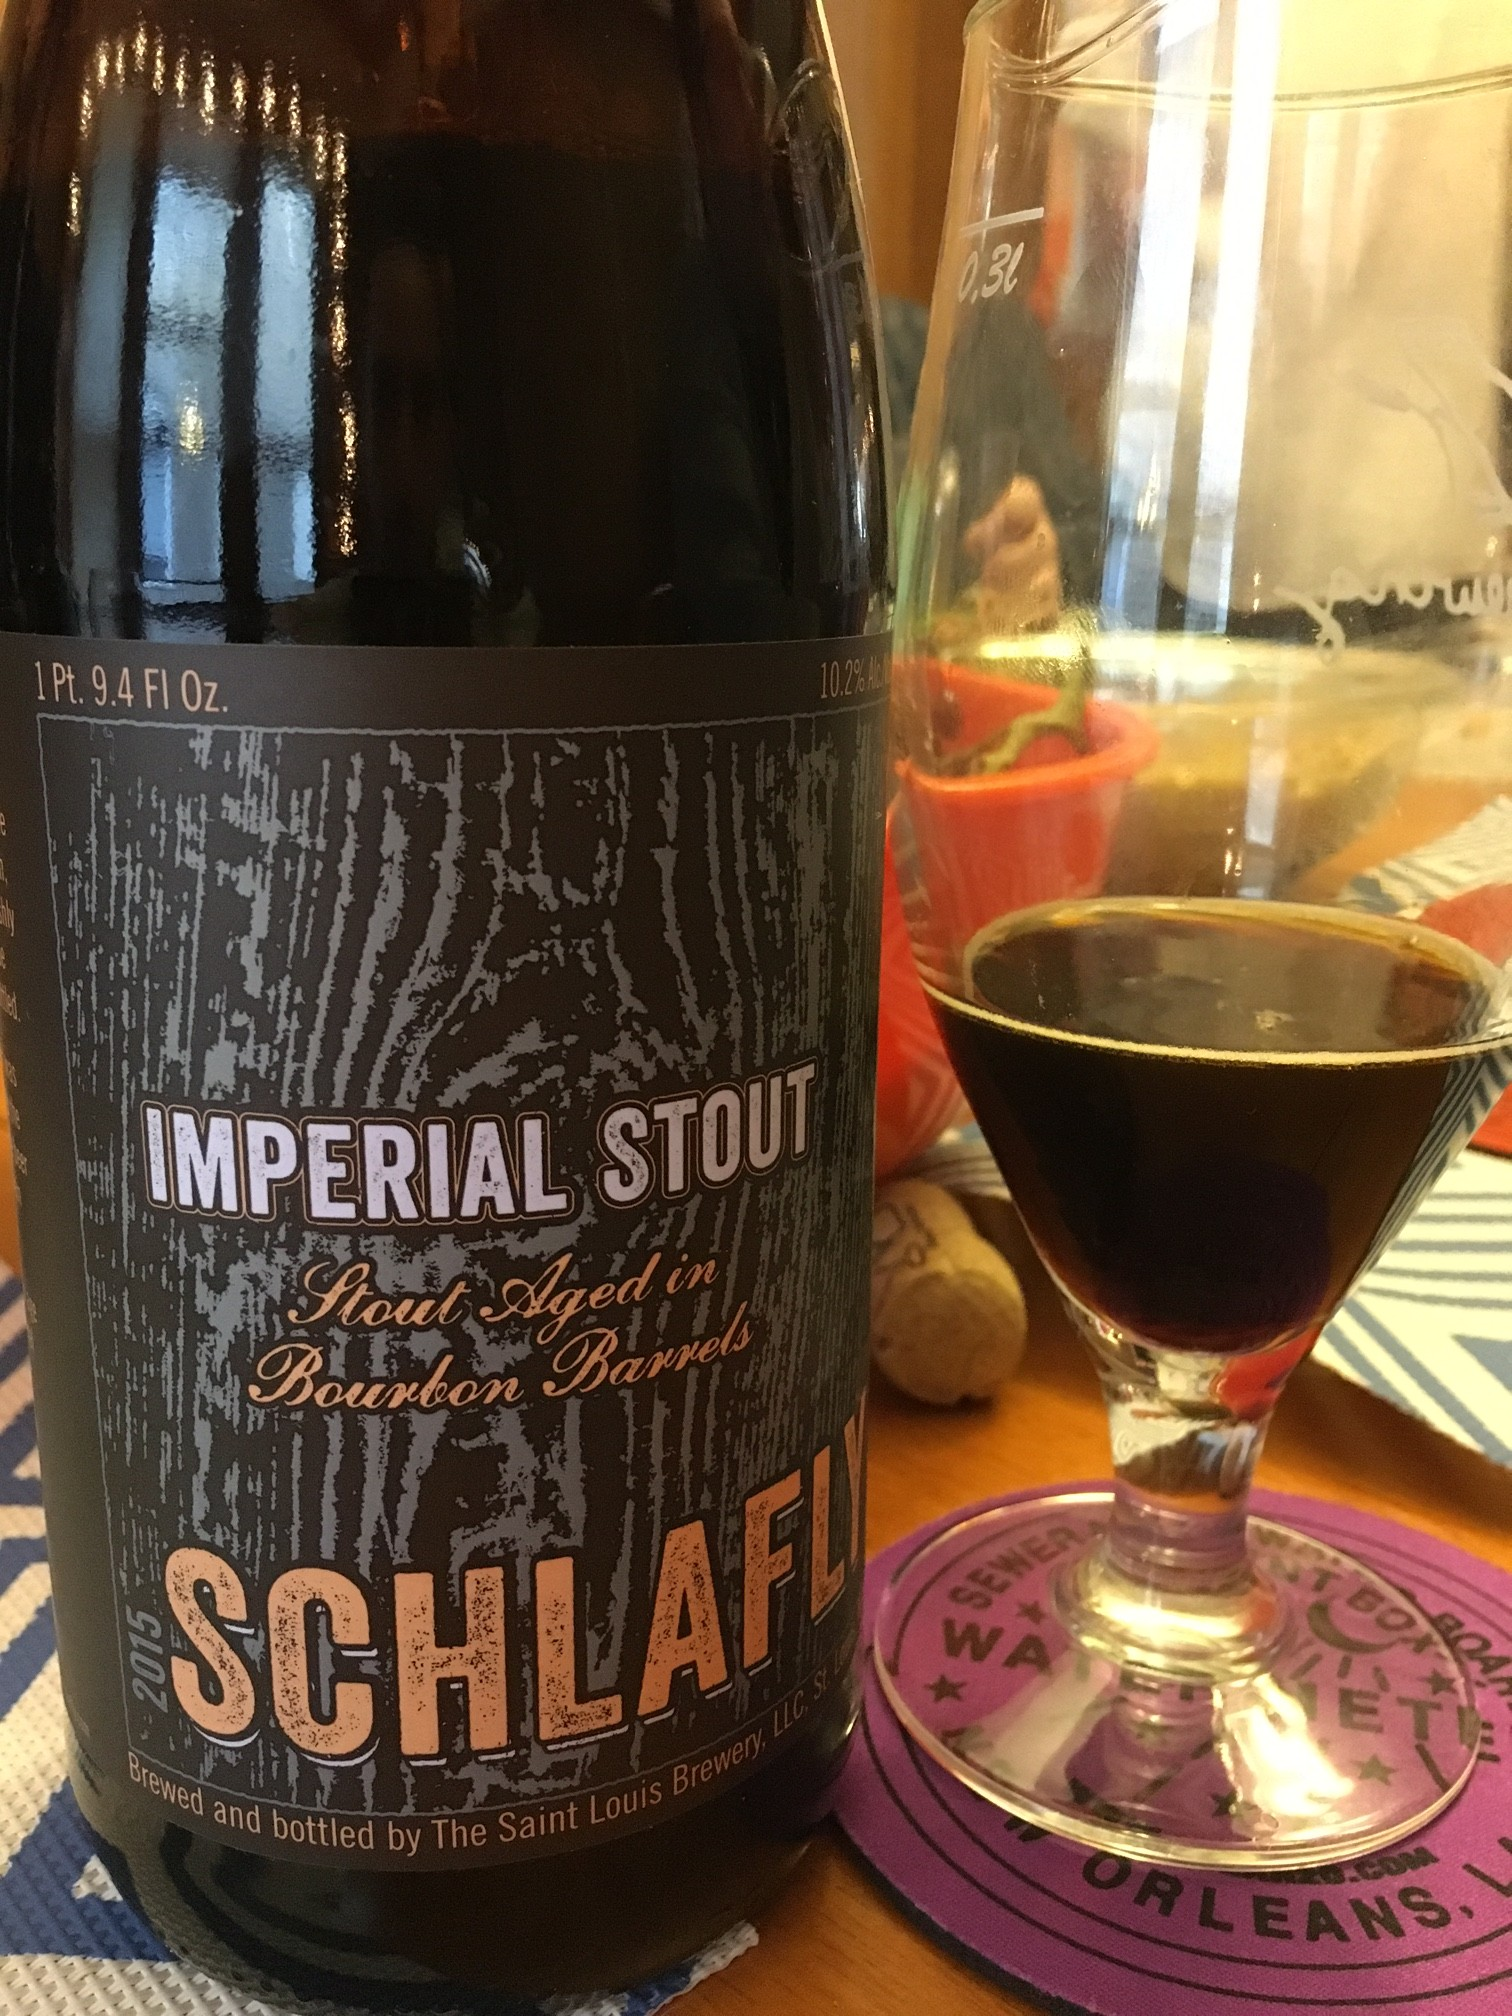 Schlafly BBA Imperial Stout